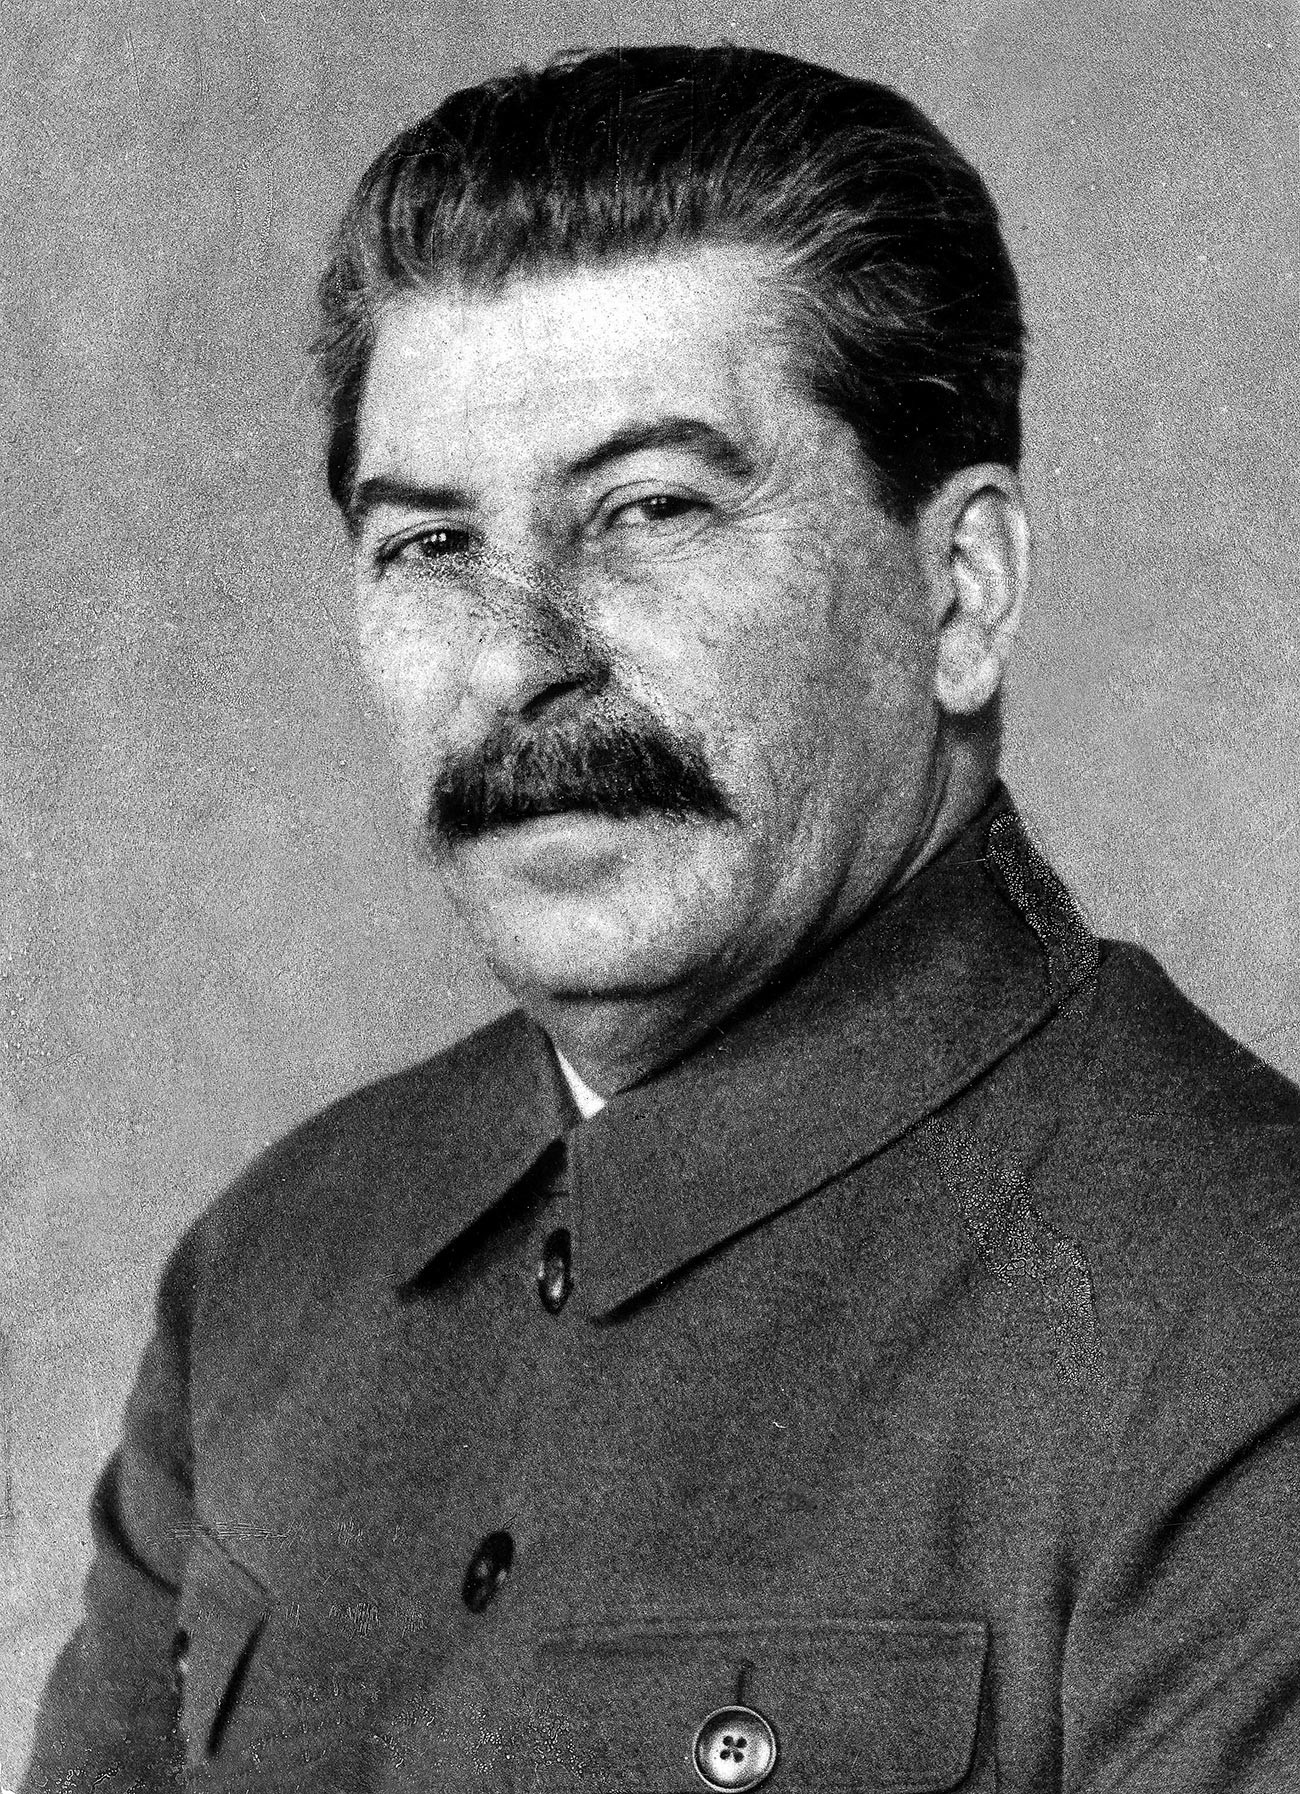 This is one of the rare photos of Stalin where pockmarking is obvious on his face.